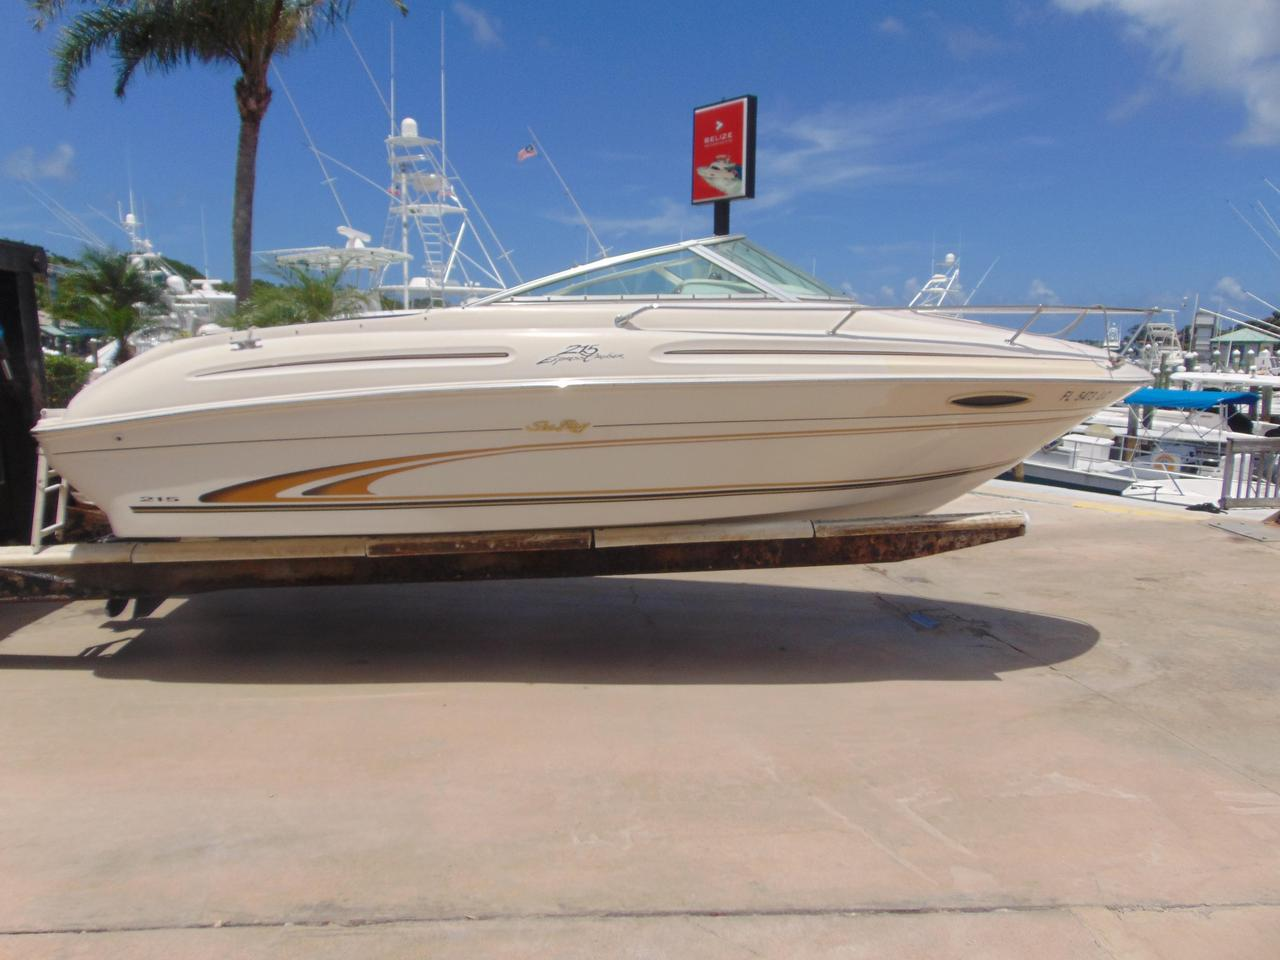 Used Sea Ray 215 Express Cruiser215 Express Cruiser Boat For Sale